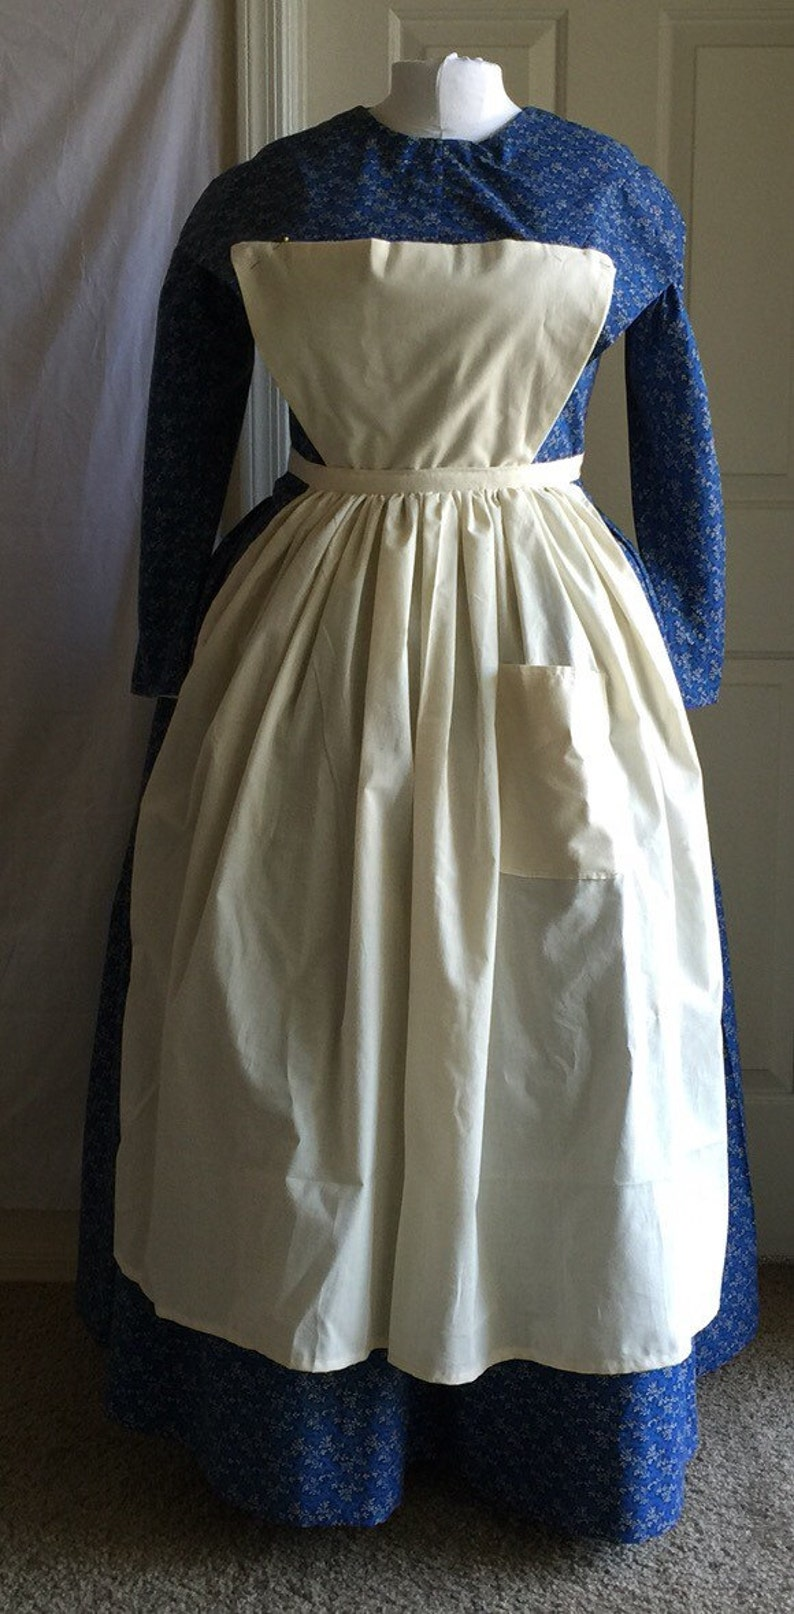 10 Things to Do with Vintage Aprons Victorian Wild West Pinned Apron Pinafore Civil War Southern Belle Housemaid Downton Abby Scullery Maid Reenact $30.00 AT vintagedancer.com